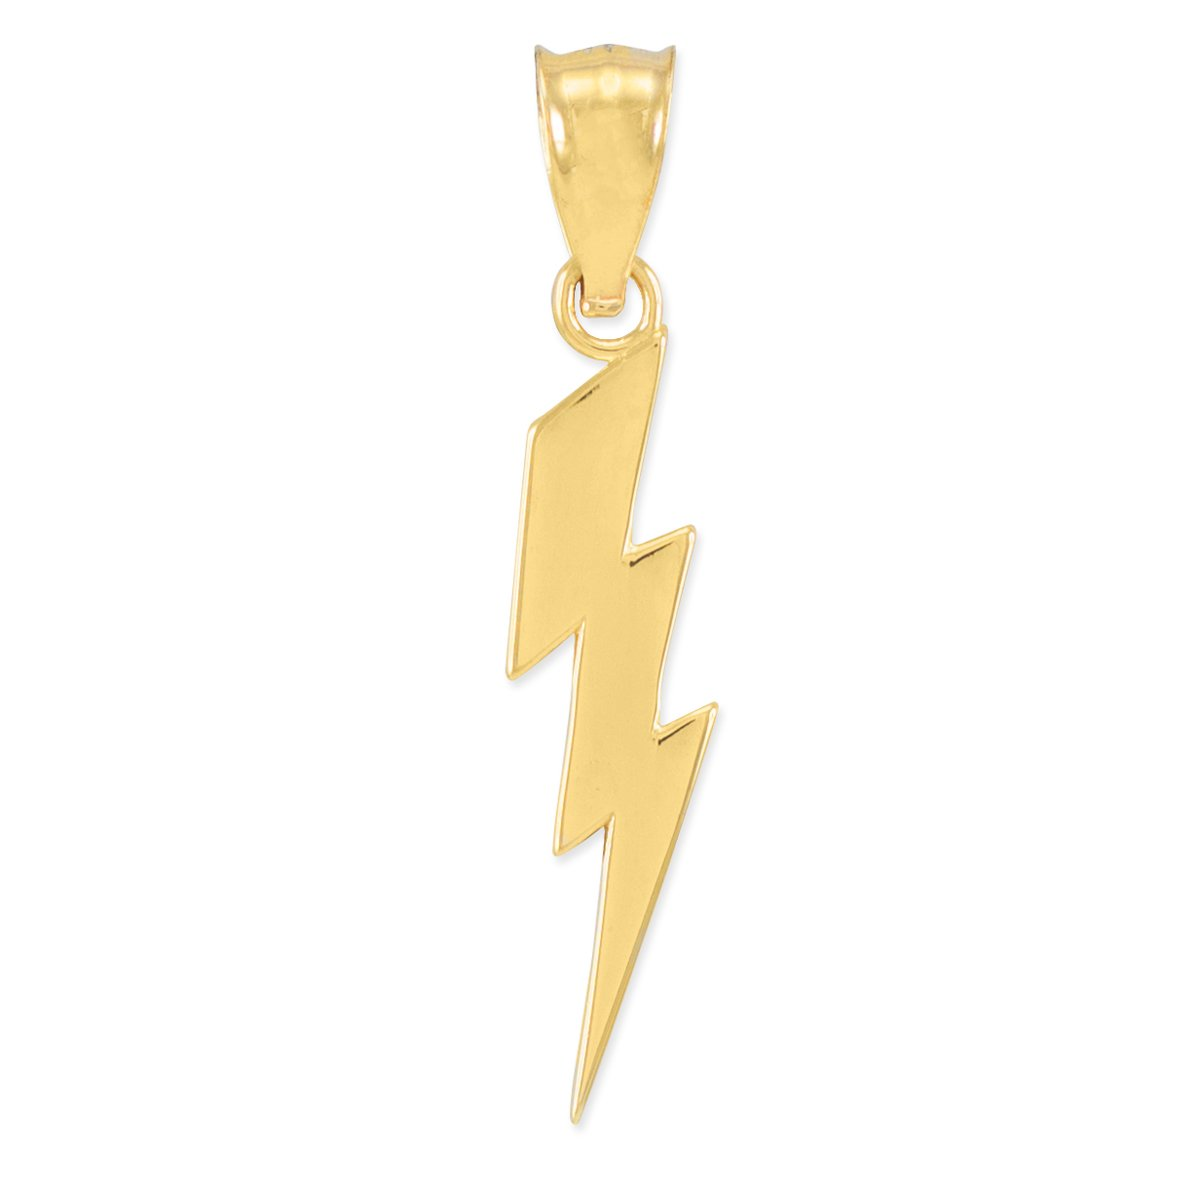 High Polish 14k Yellow Gold Lightning Bolt Bracelet Charm